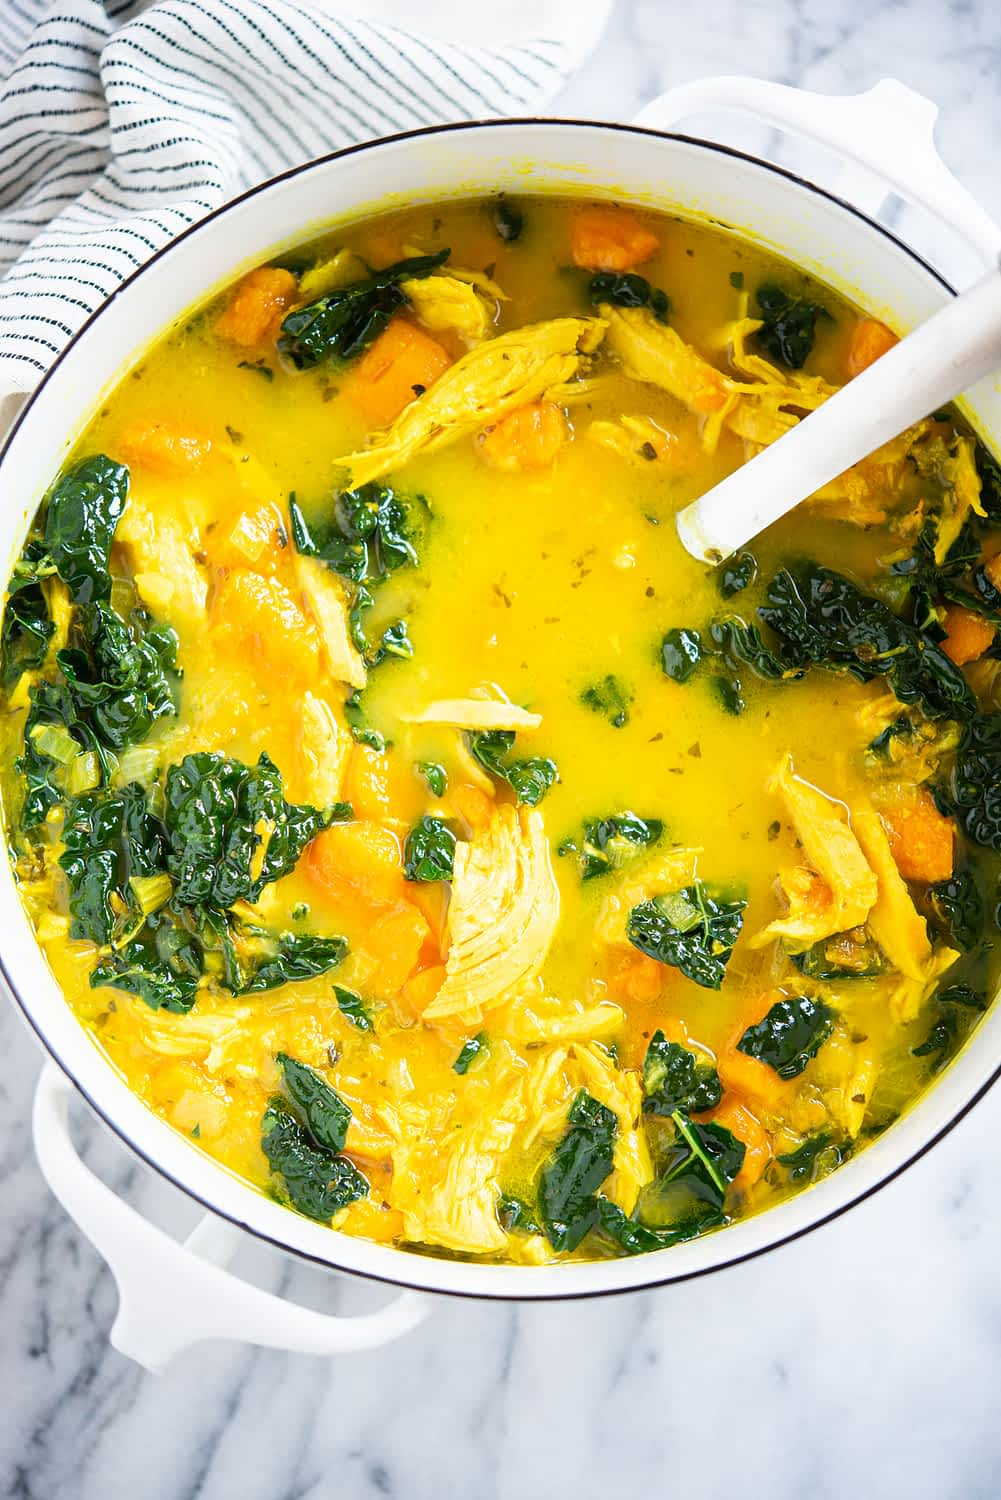 healing chicken soup with yellow turmeric broth, sweet potatoes, and kale in a white pot on a marble surface